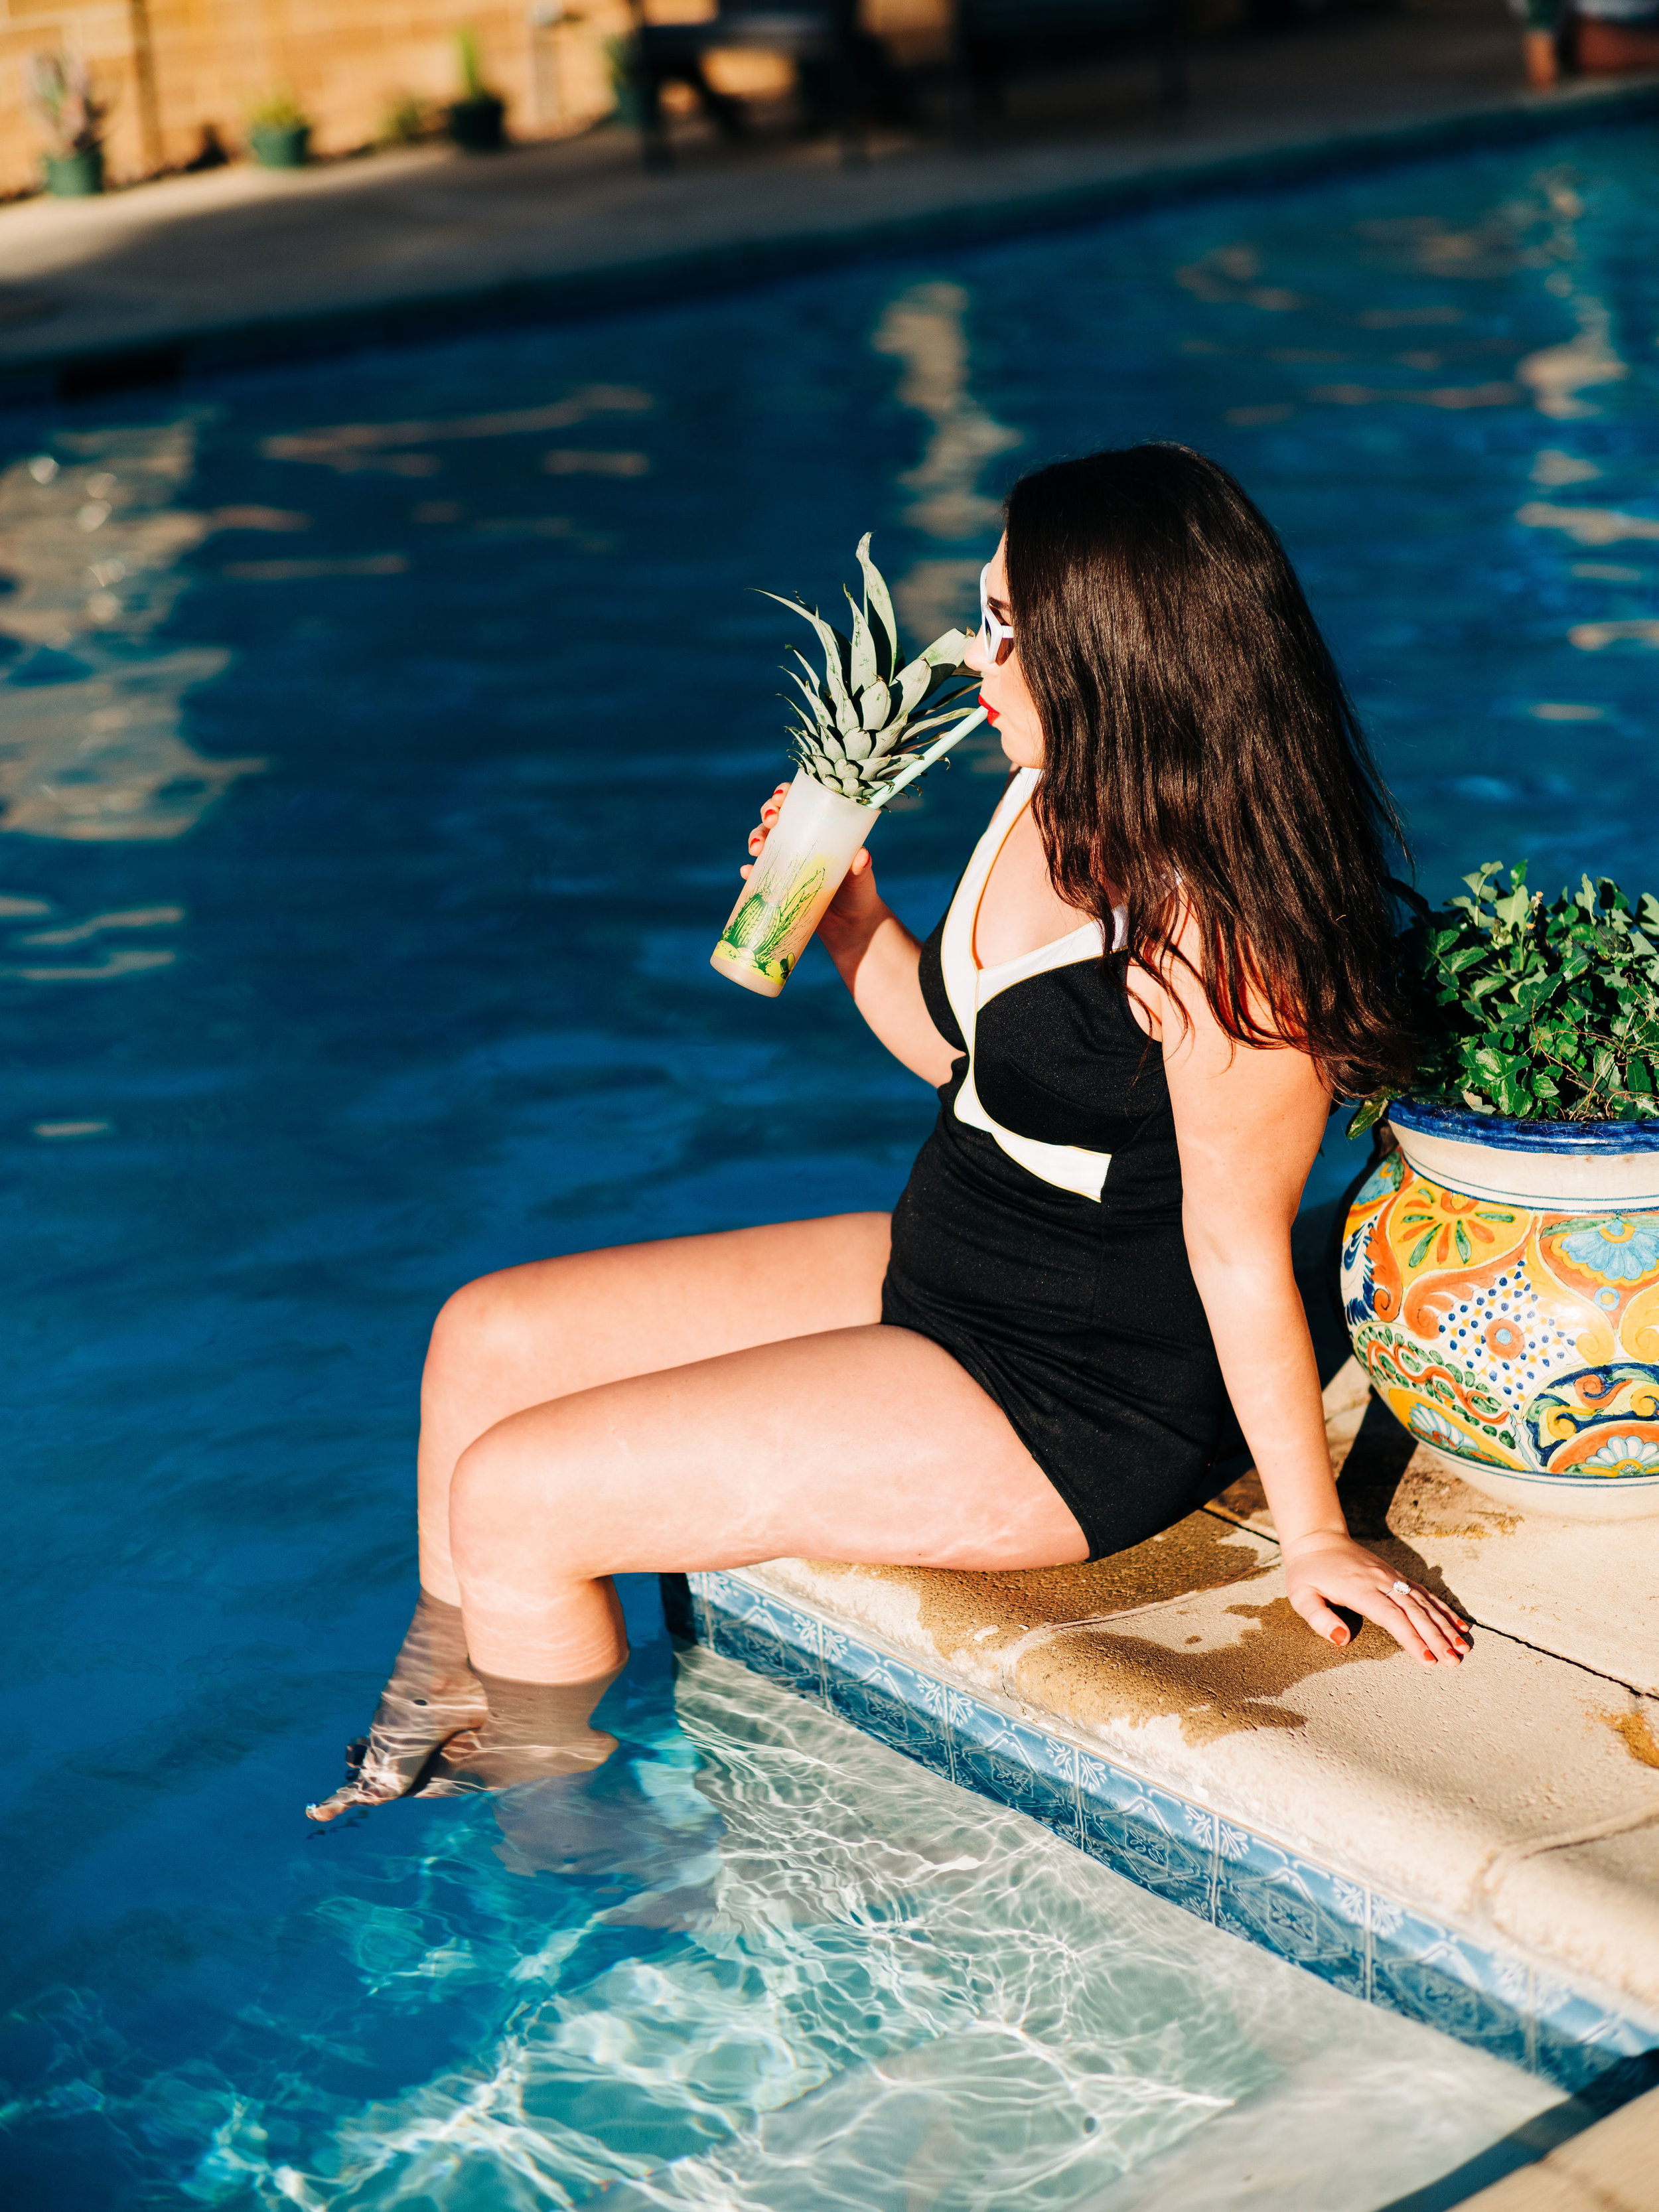 Andy-Shepard-Photography-Tucson-Pool-Party-72.jpg